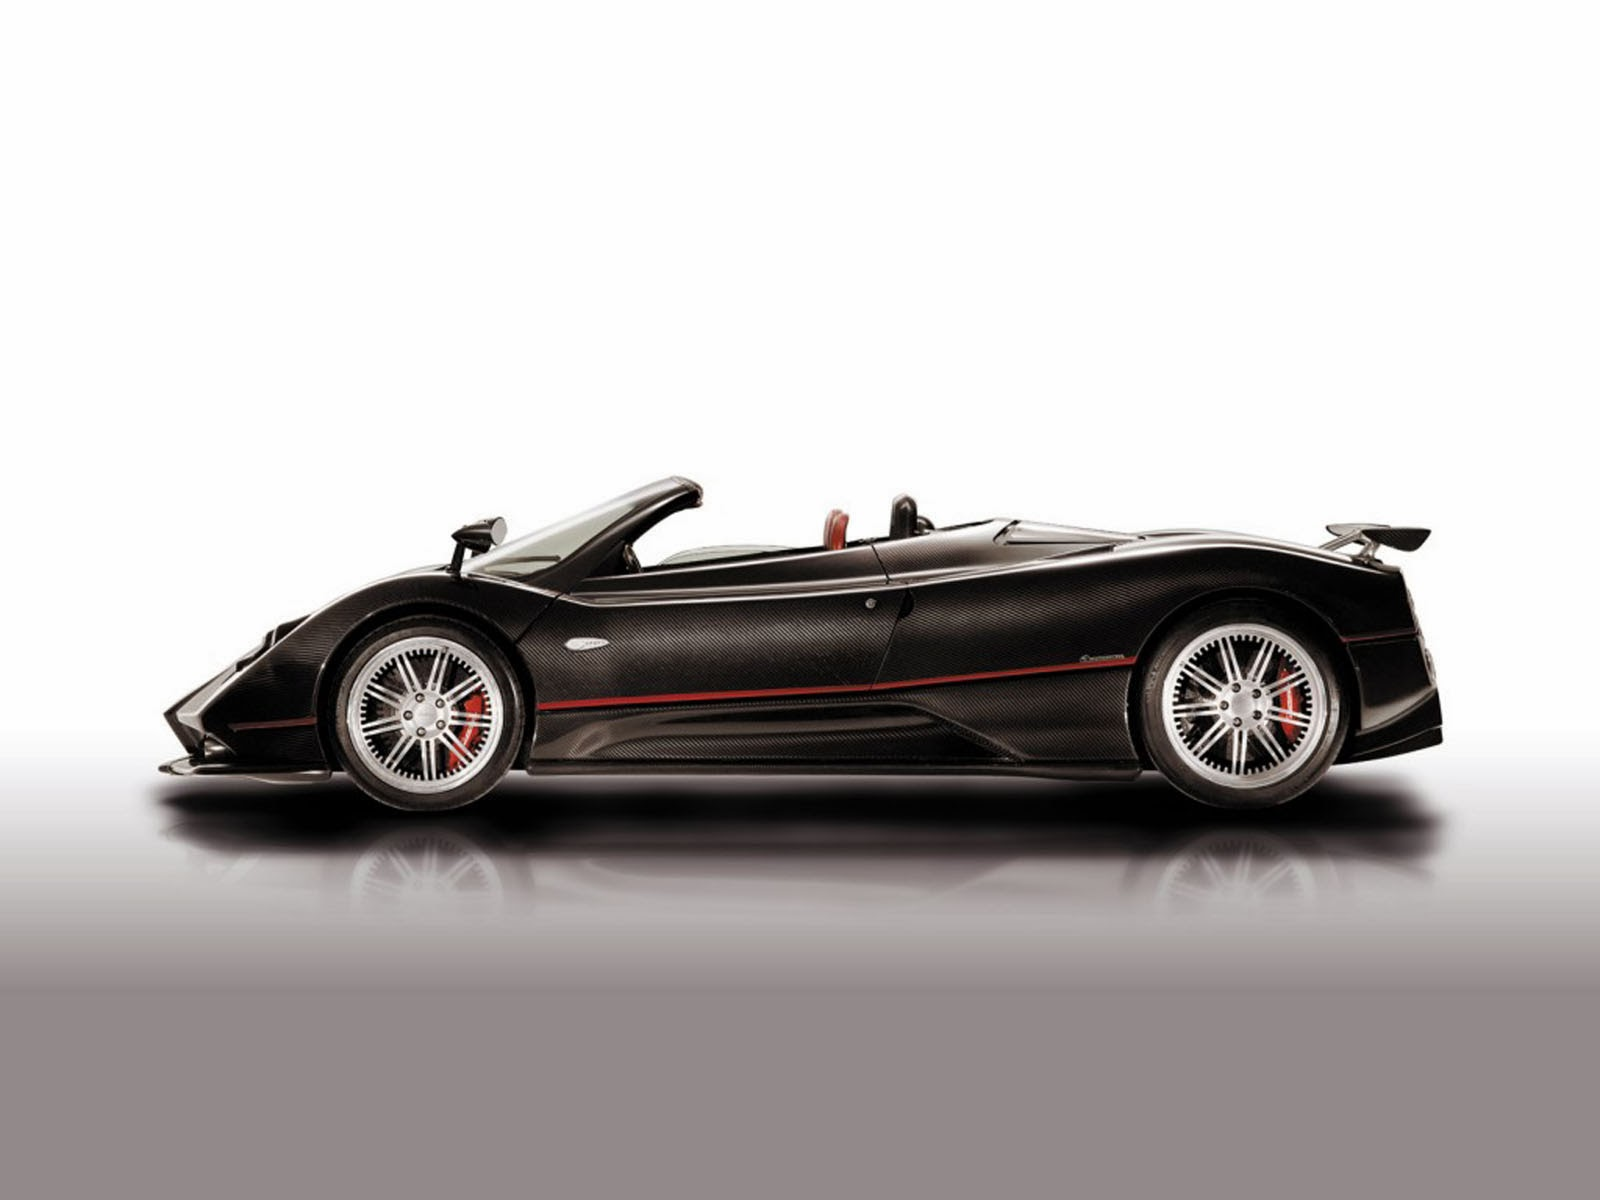 Tag: Pagani Zonda F Roadster Wallpapers, Backgrounds,Photos, Images ...